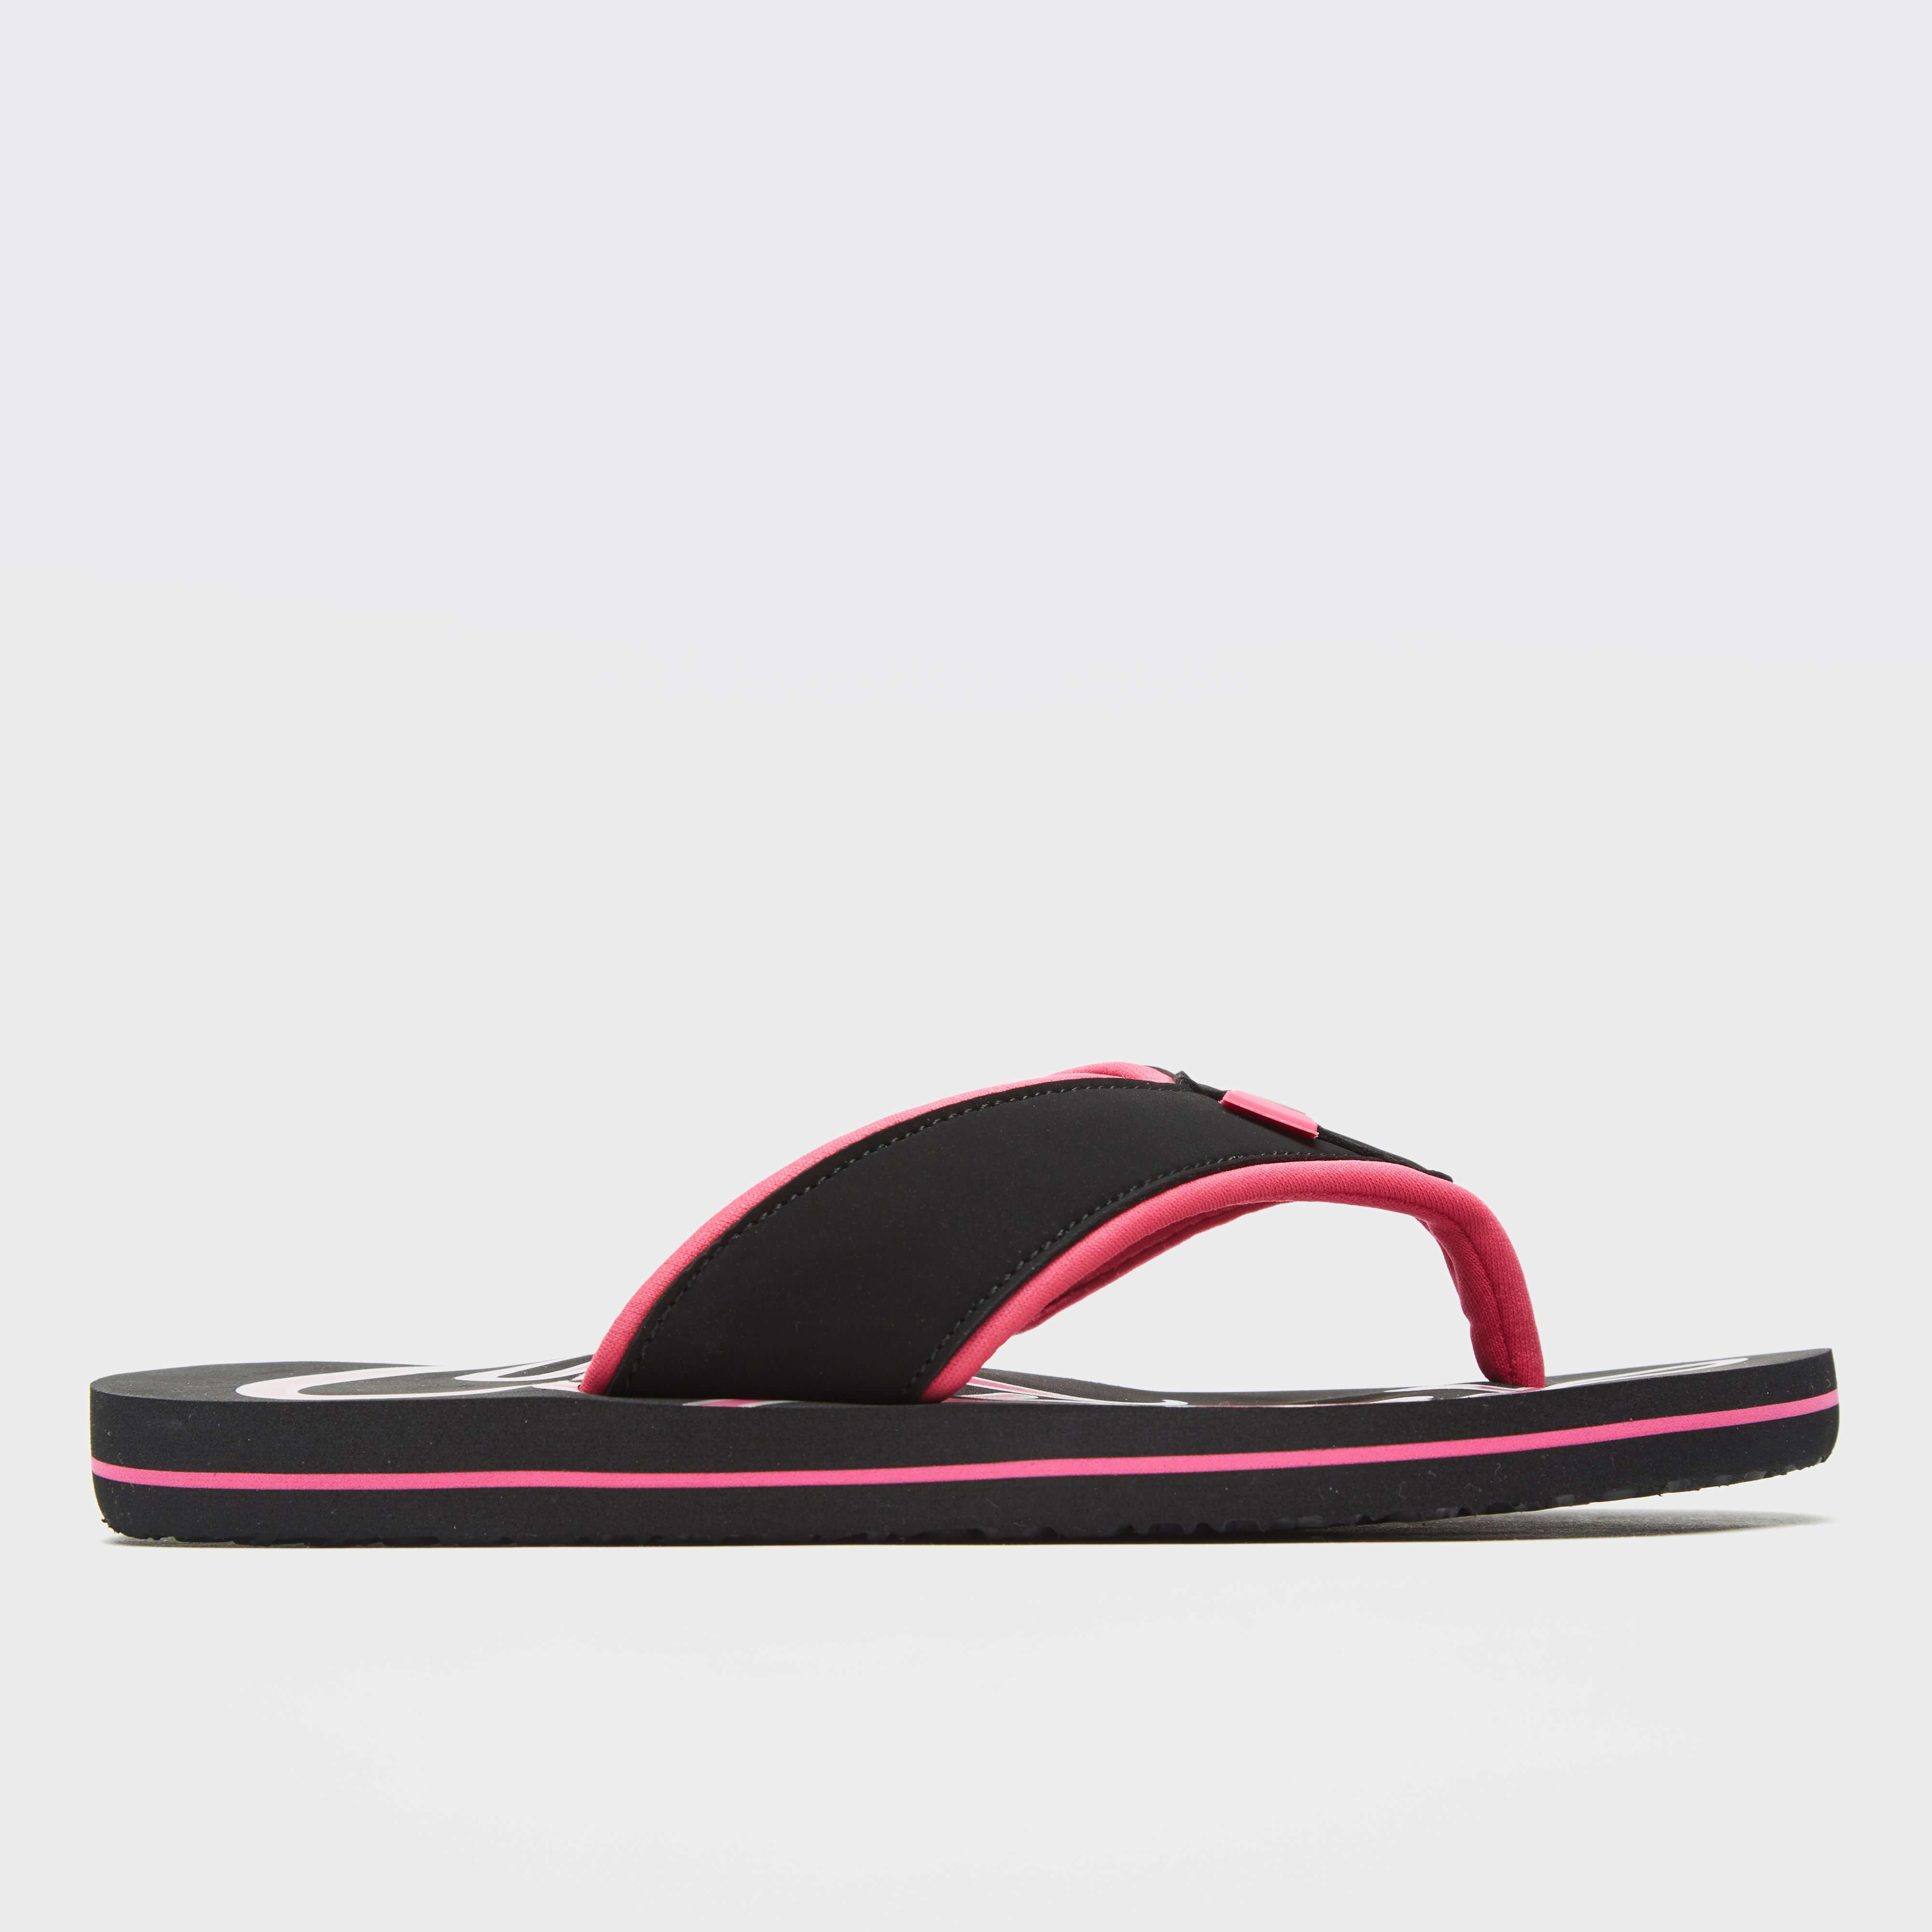 ANIMAL Women's Swish Slim Flip Flops